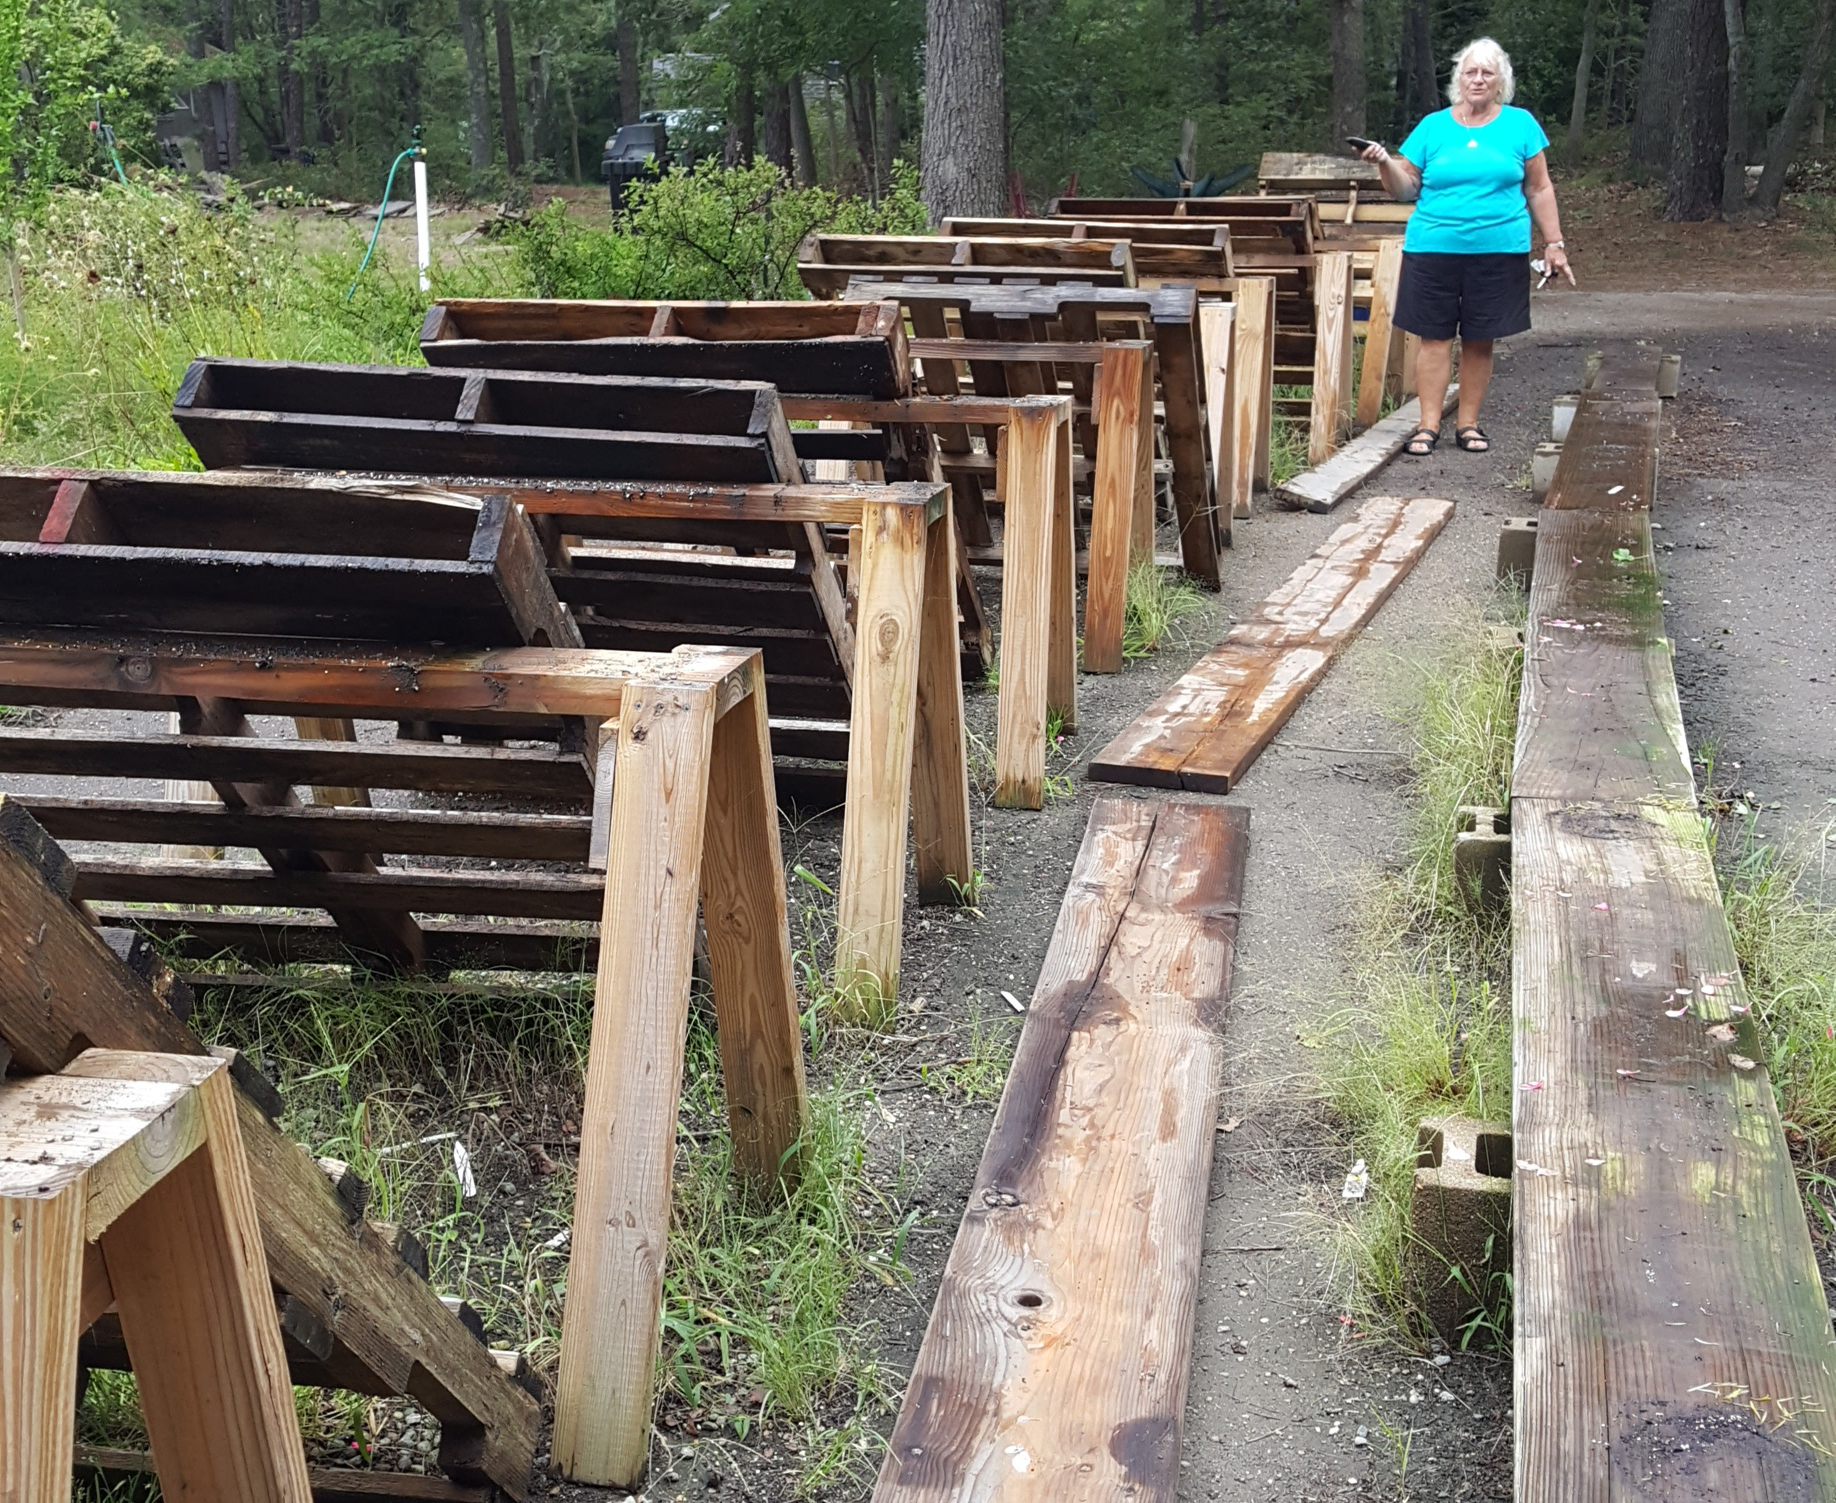 Wooden Pallets at MV Greenhouse to display plants and flowers on